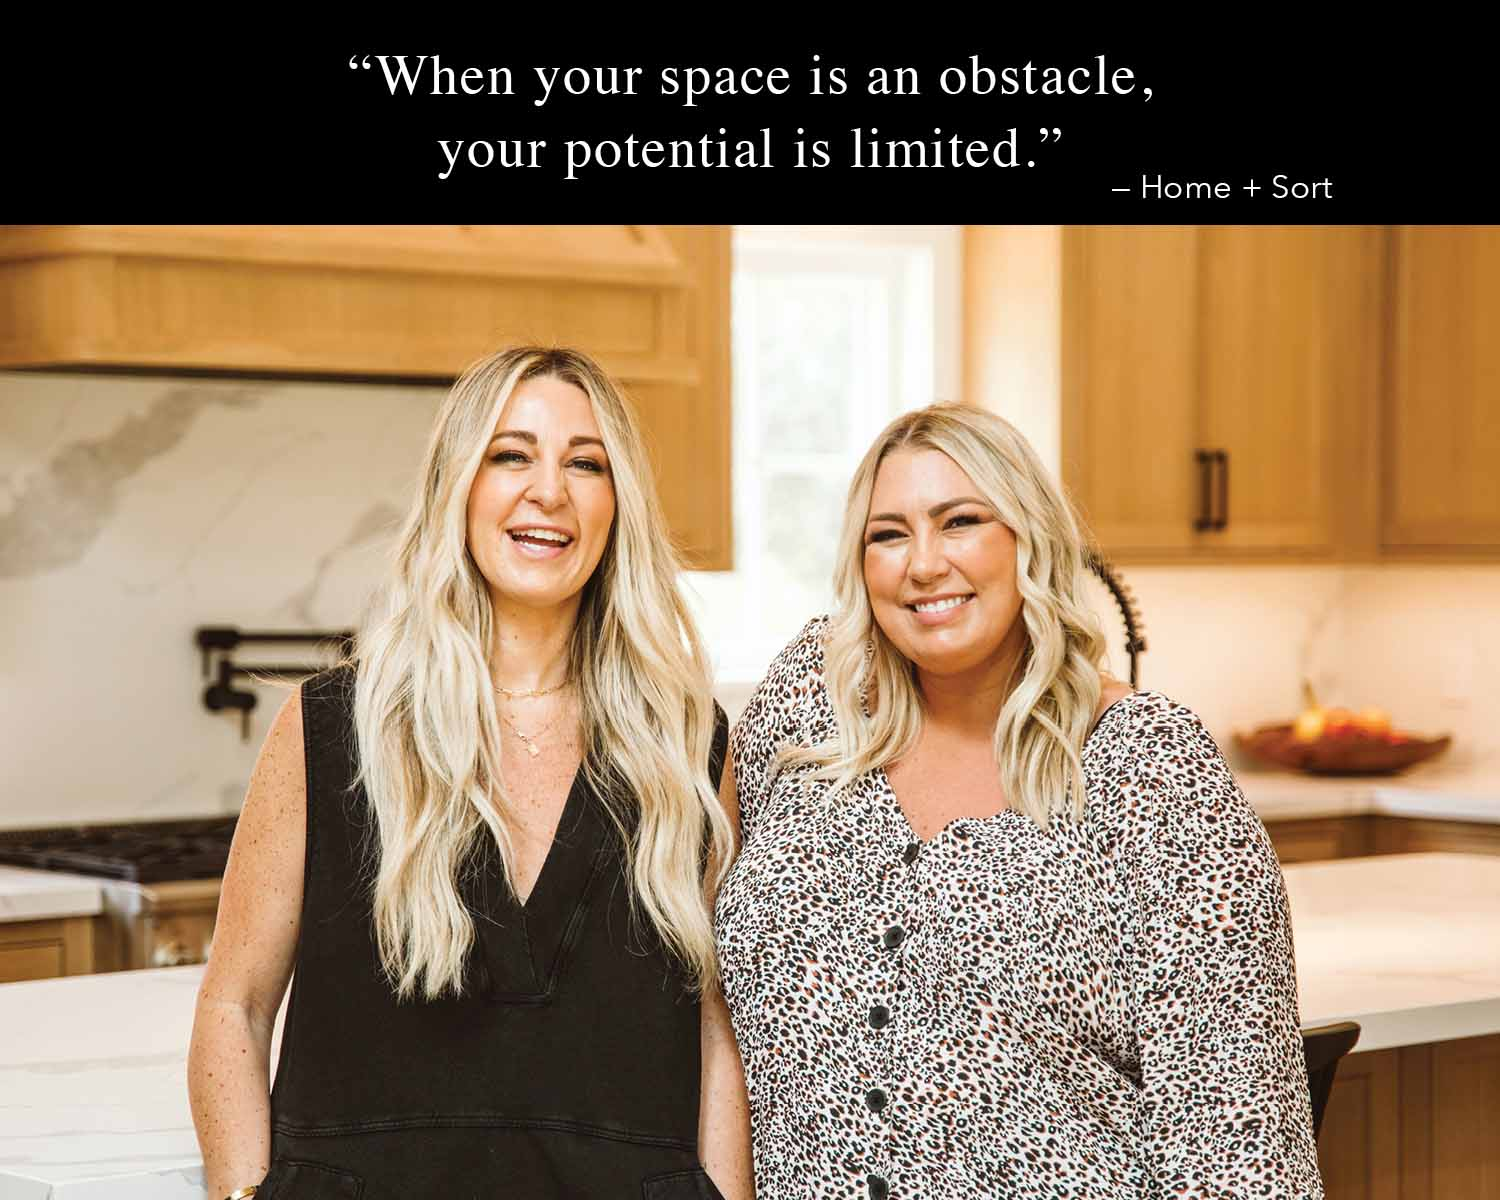 when your space is an obstacle, your potential is limited